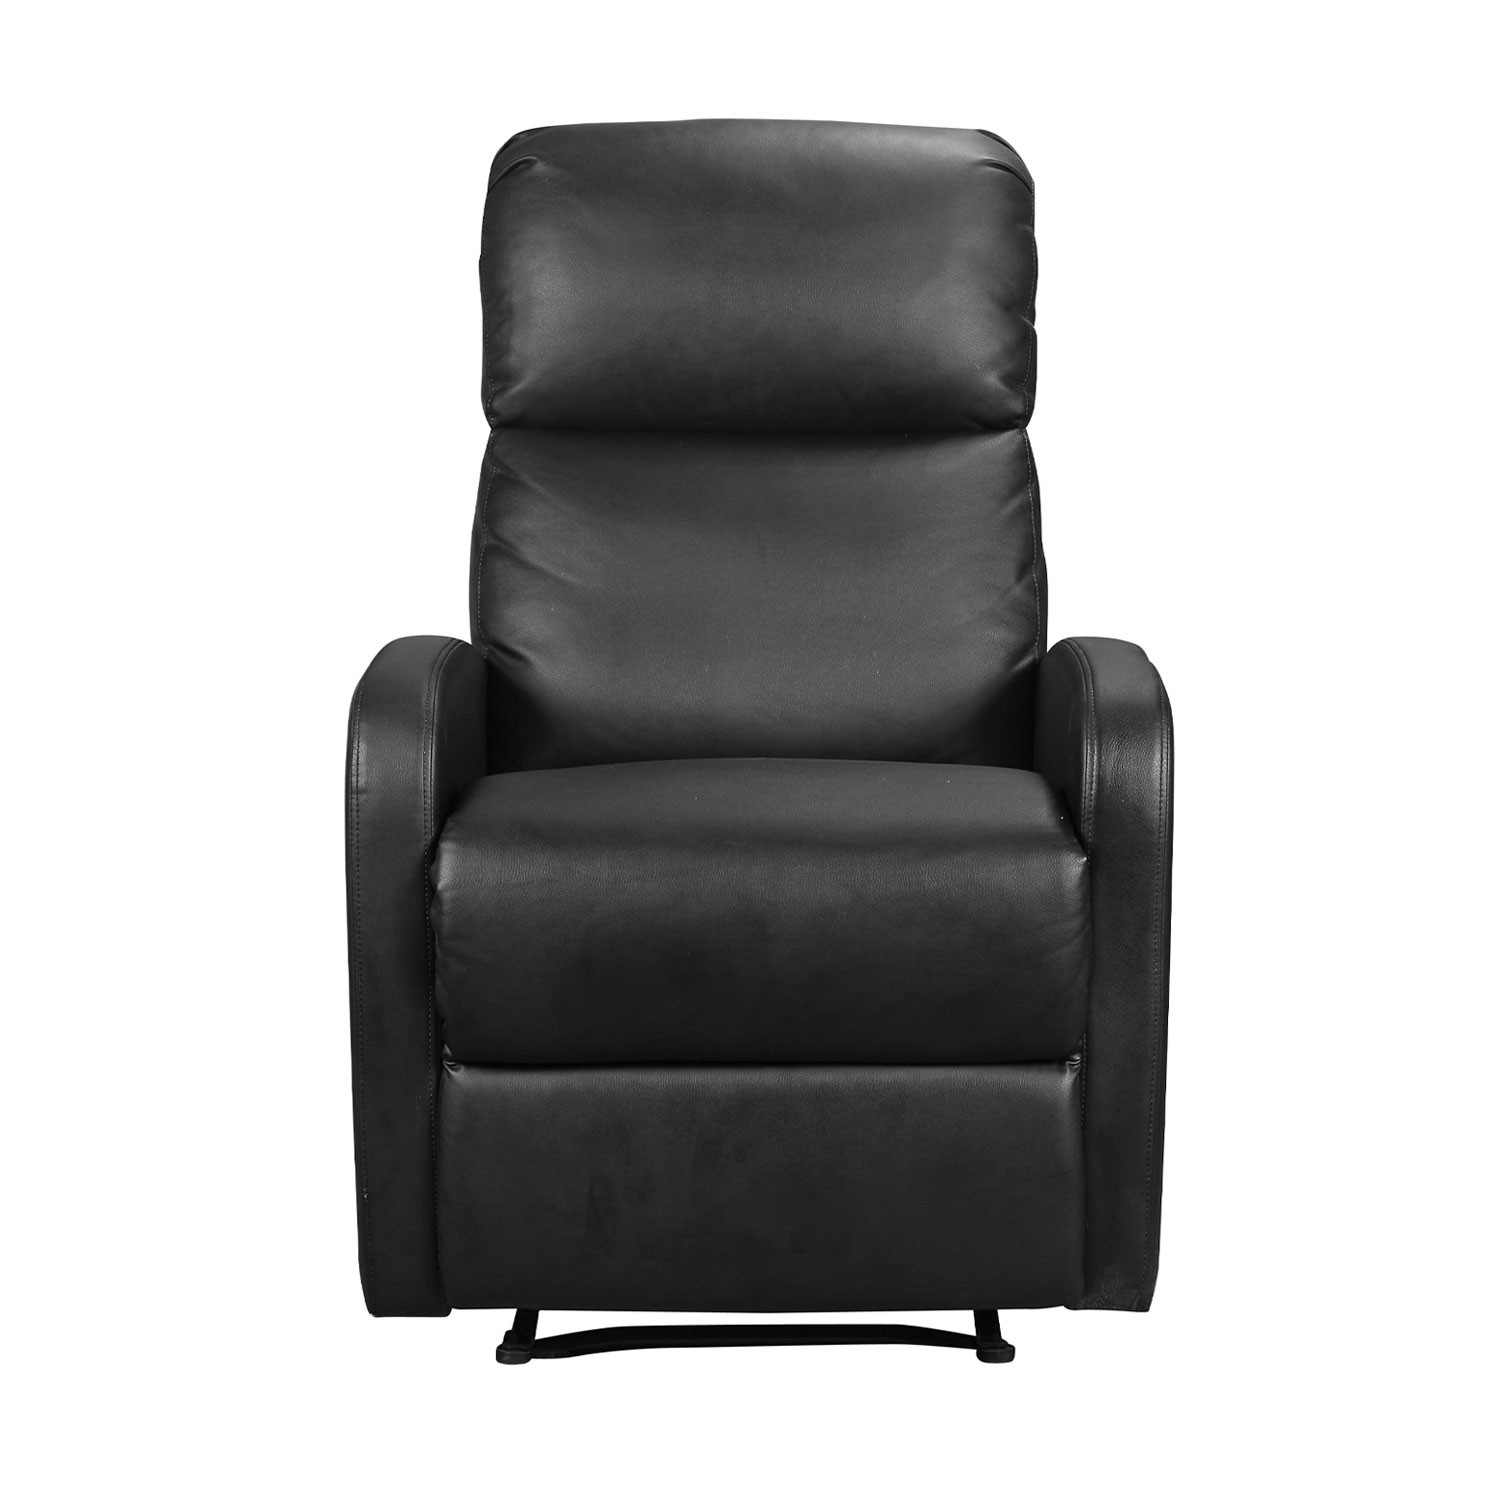 Fauteuil inclinable MAX noir